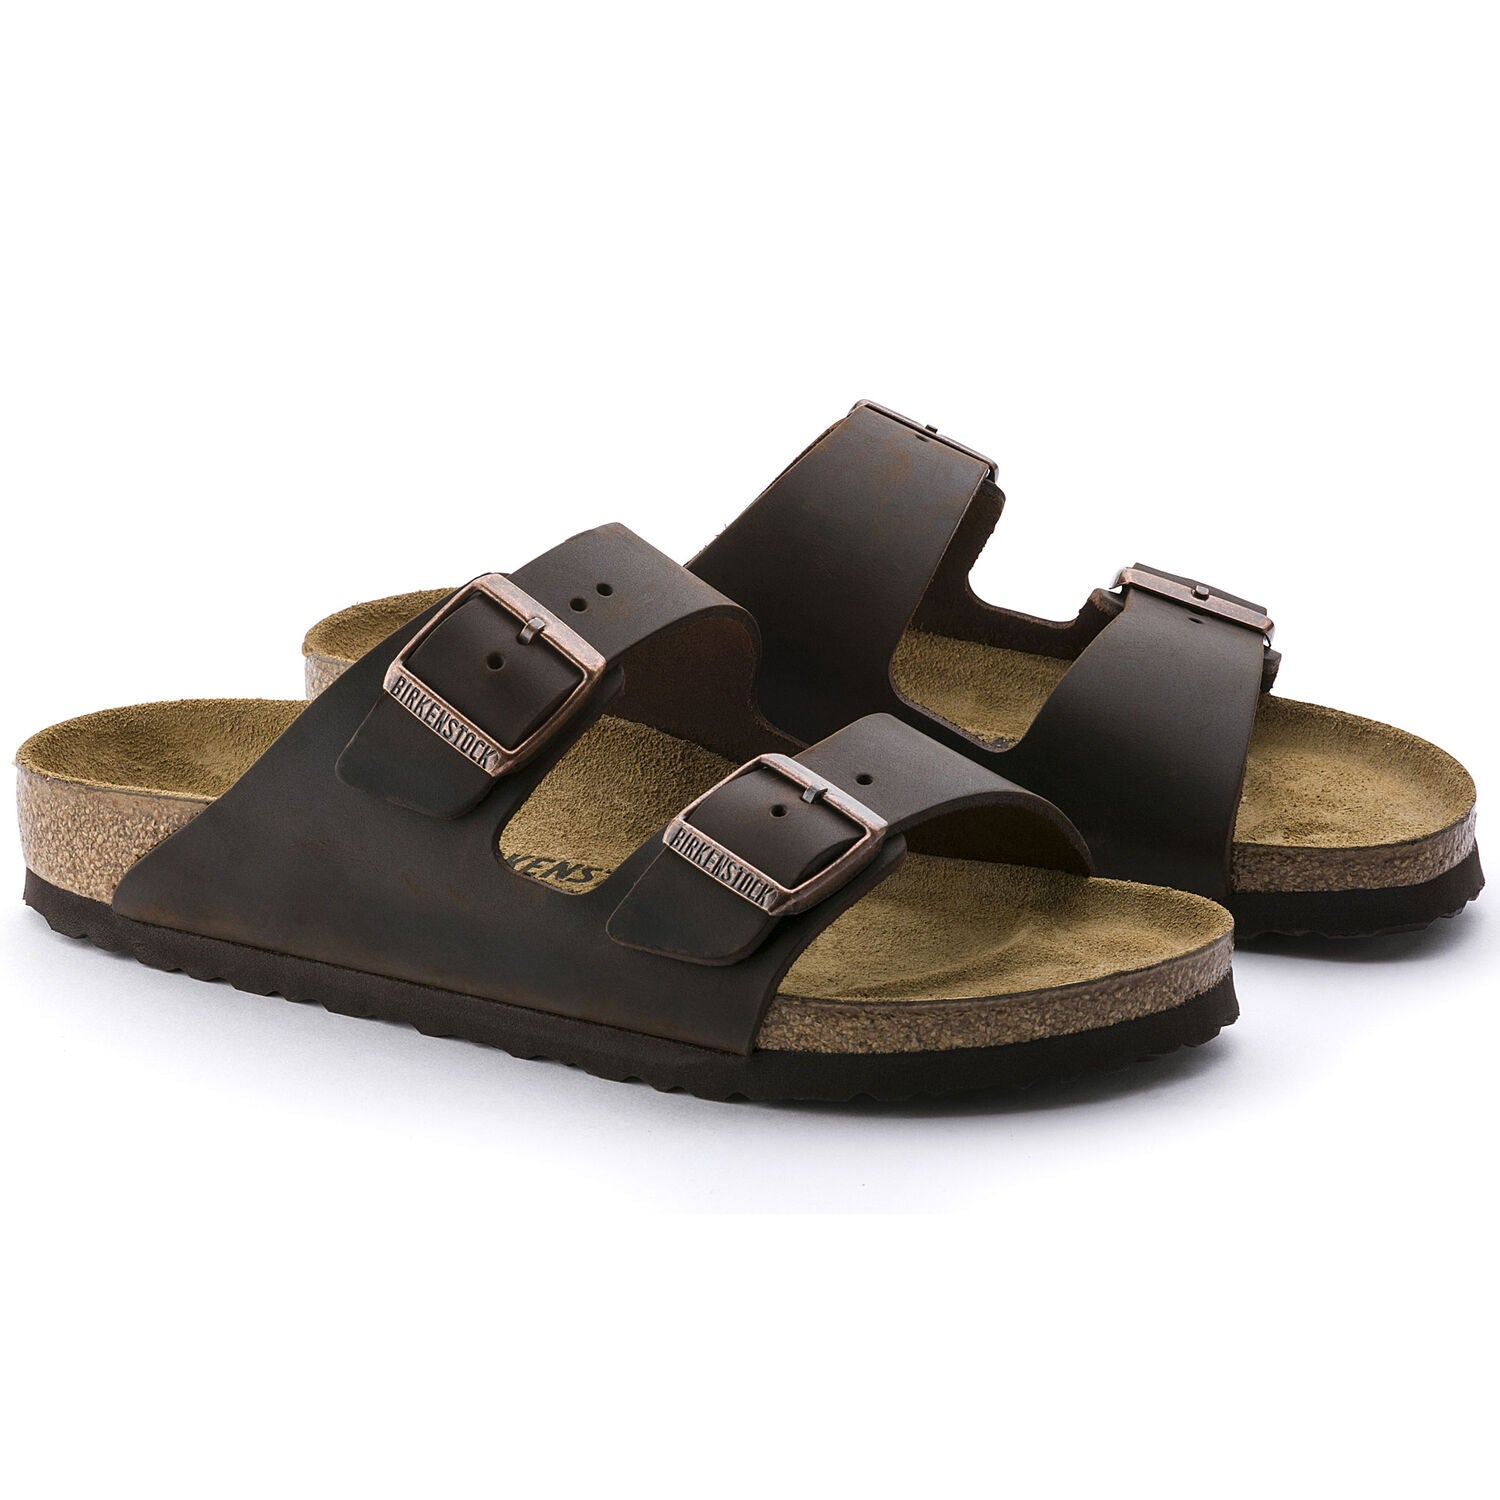 BIRKENSTOCK BIRKENSTOCK ARIZONA HABANA OILED LEATHER NARROW getset-footwear.myshopify.com